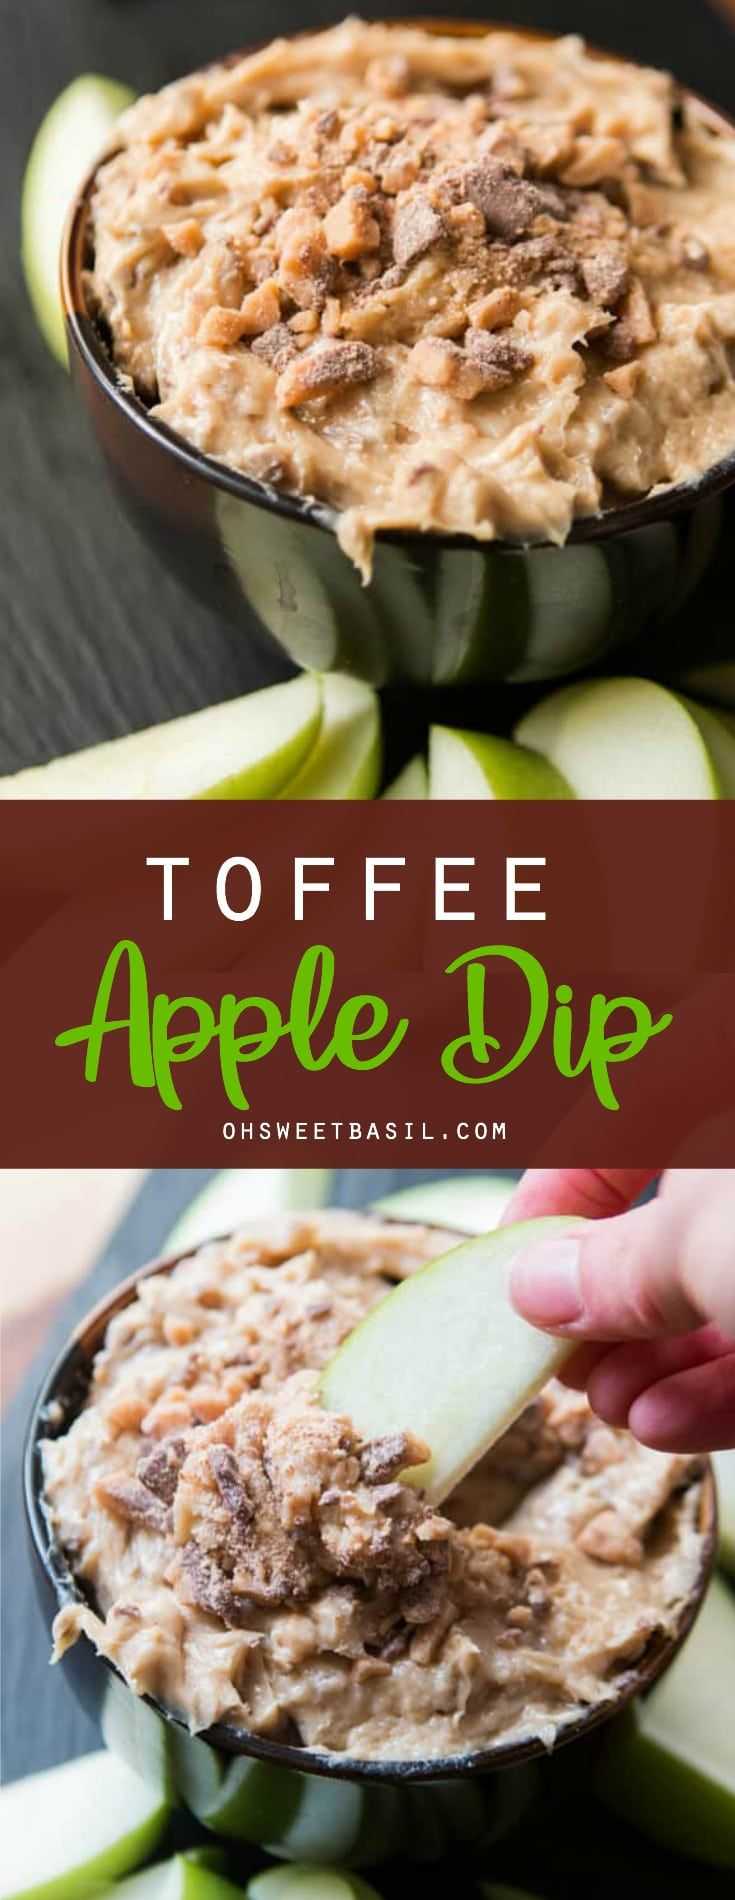 A classic, one that never gets old, toffee apple d…